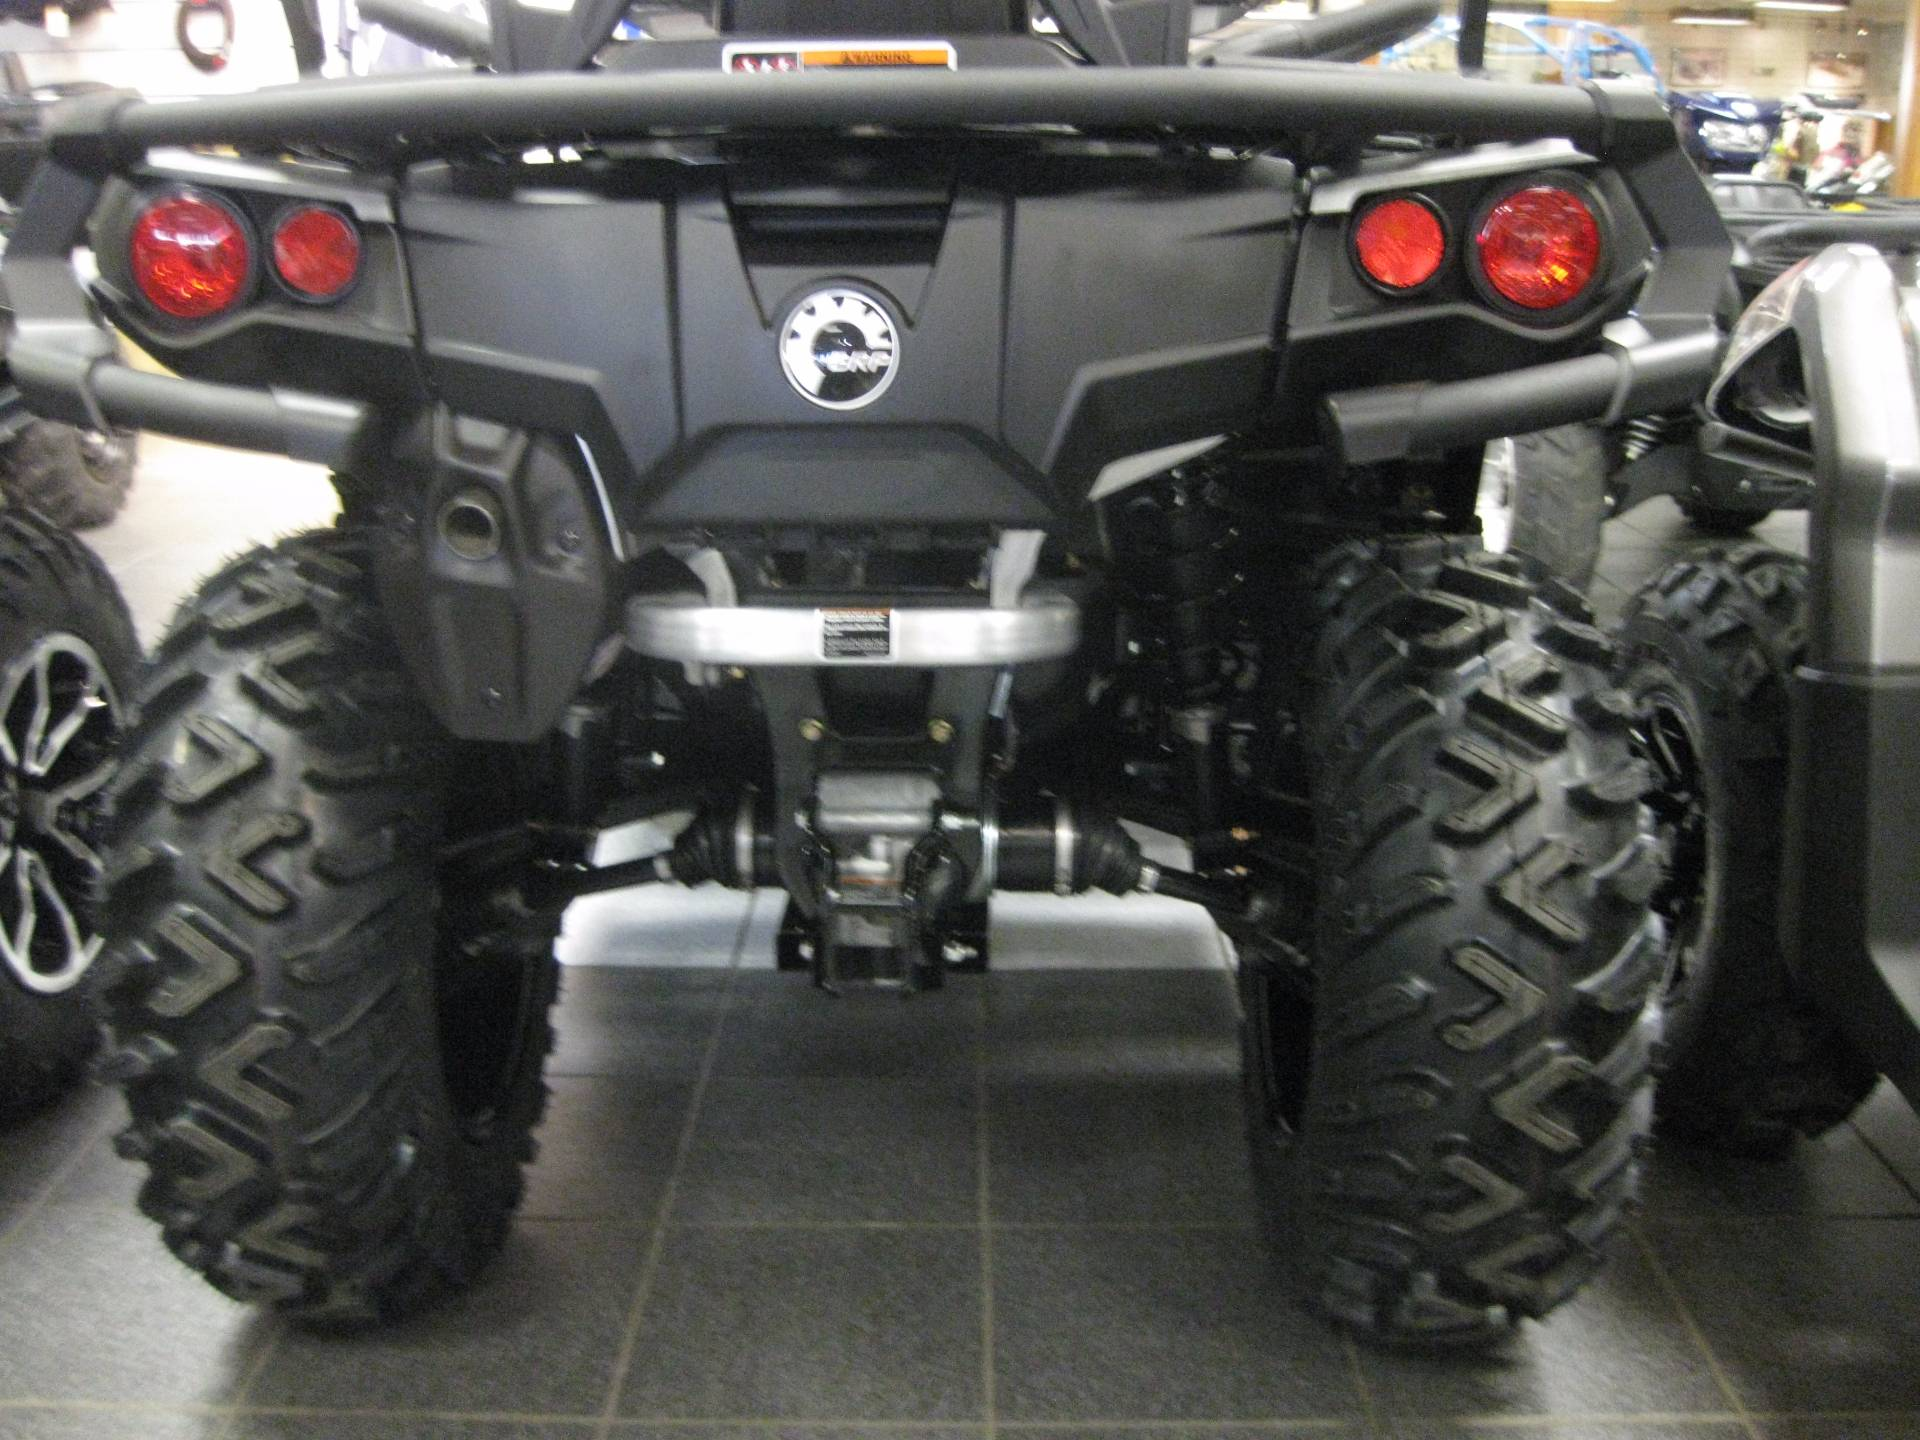 2017 Can-Am Outlander XT 650 Max in Wisconsin Rapids, Wisconsin